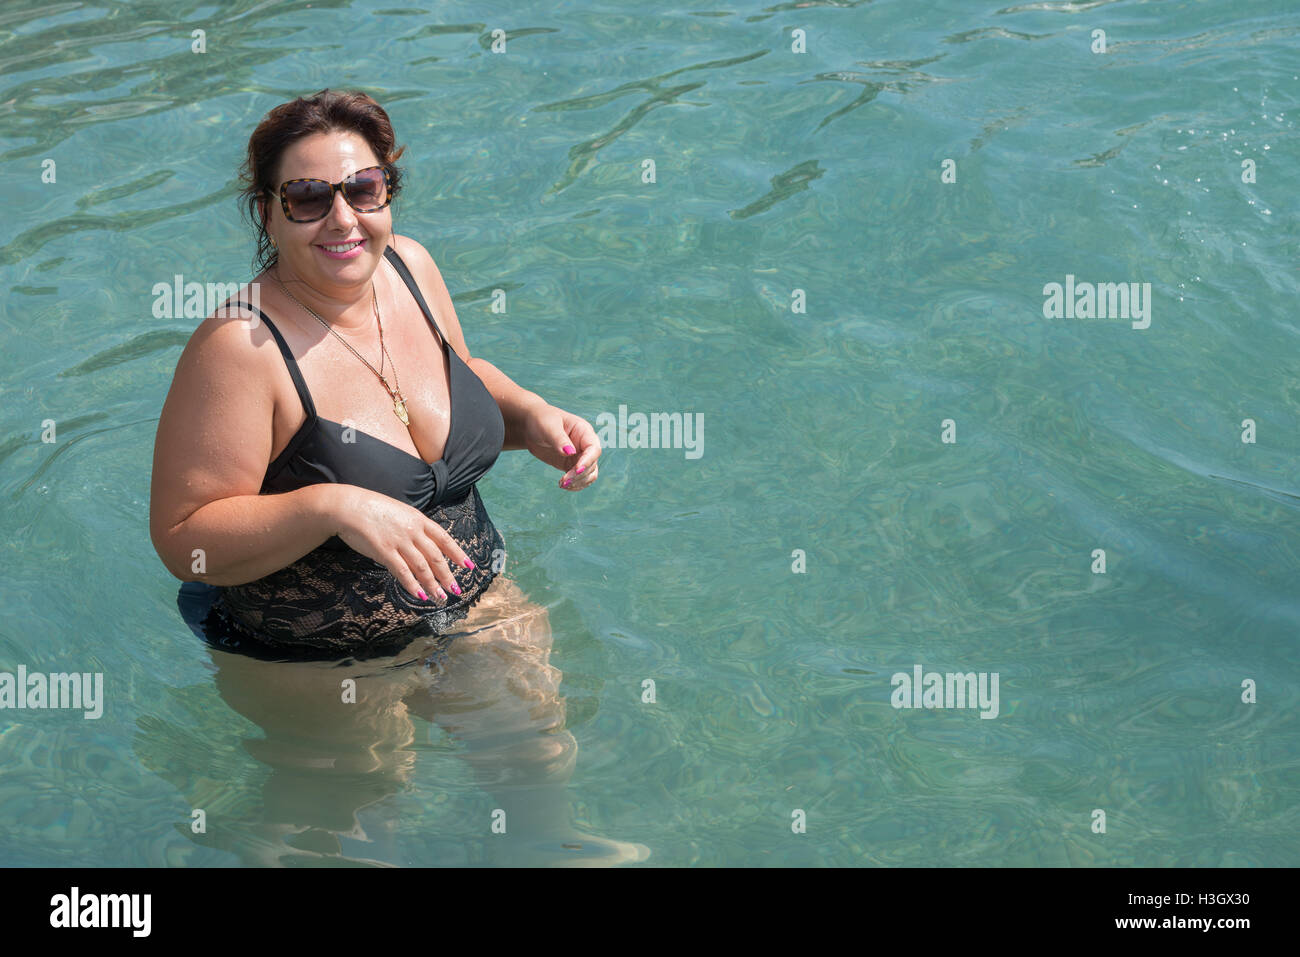 full length portrait of plump mature woman in dark lace swimsuit